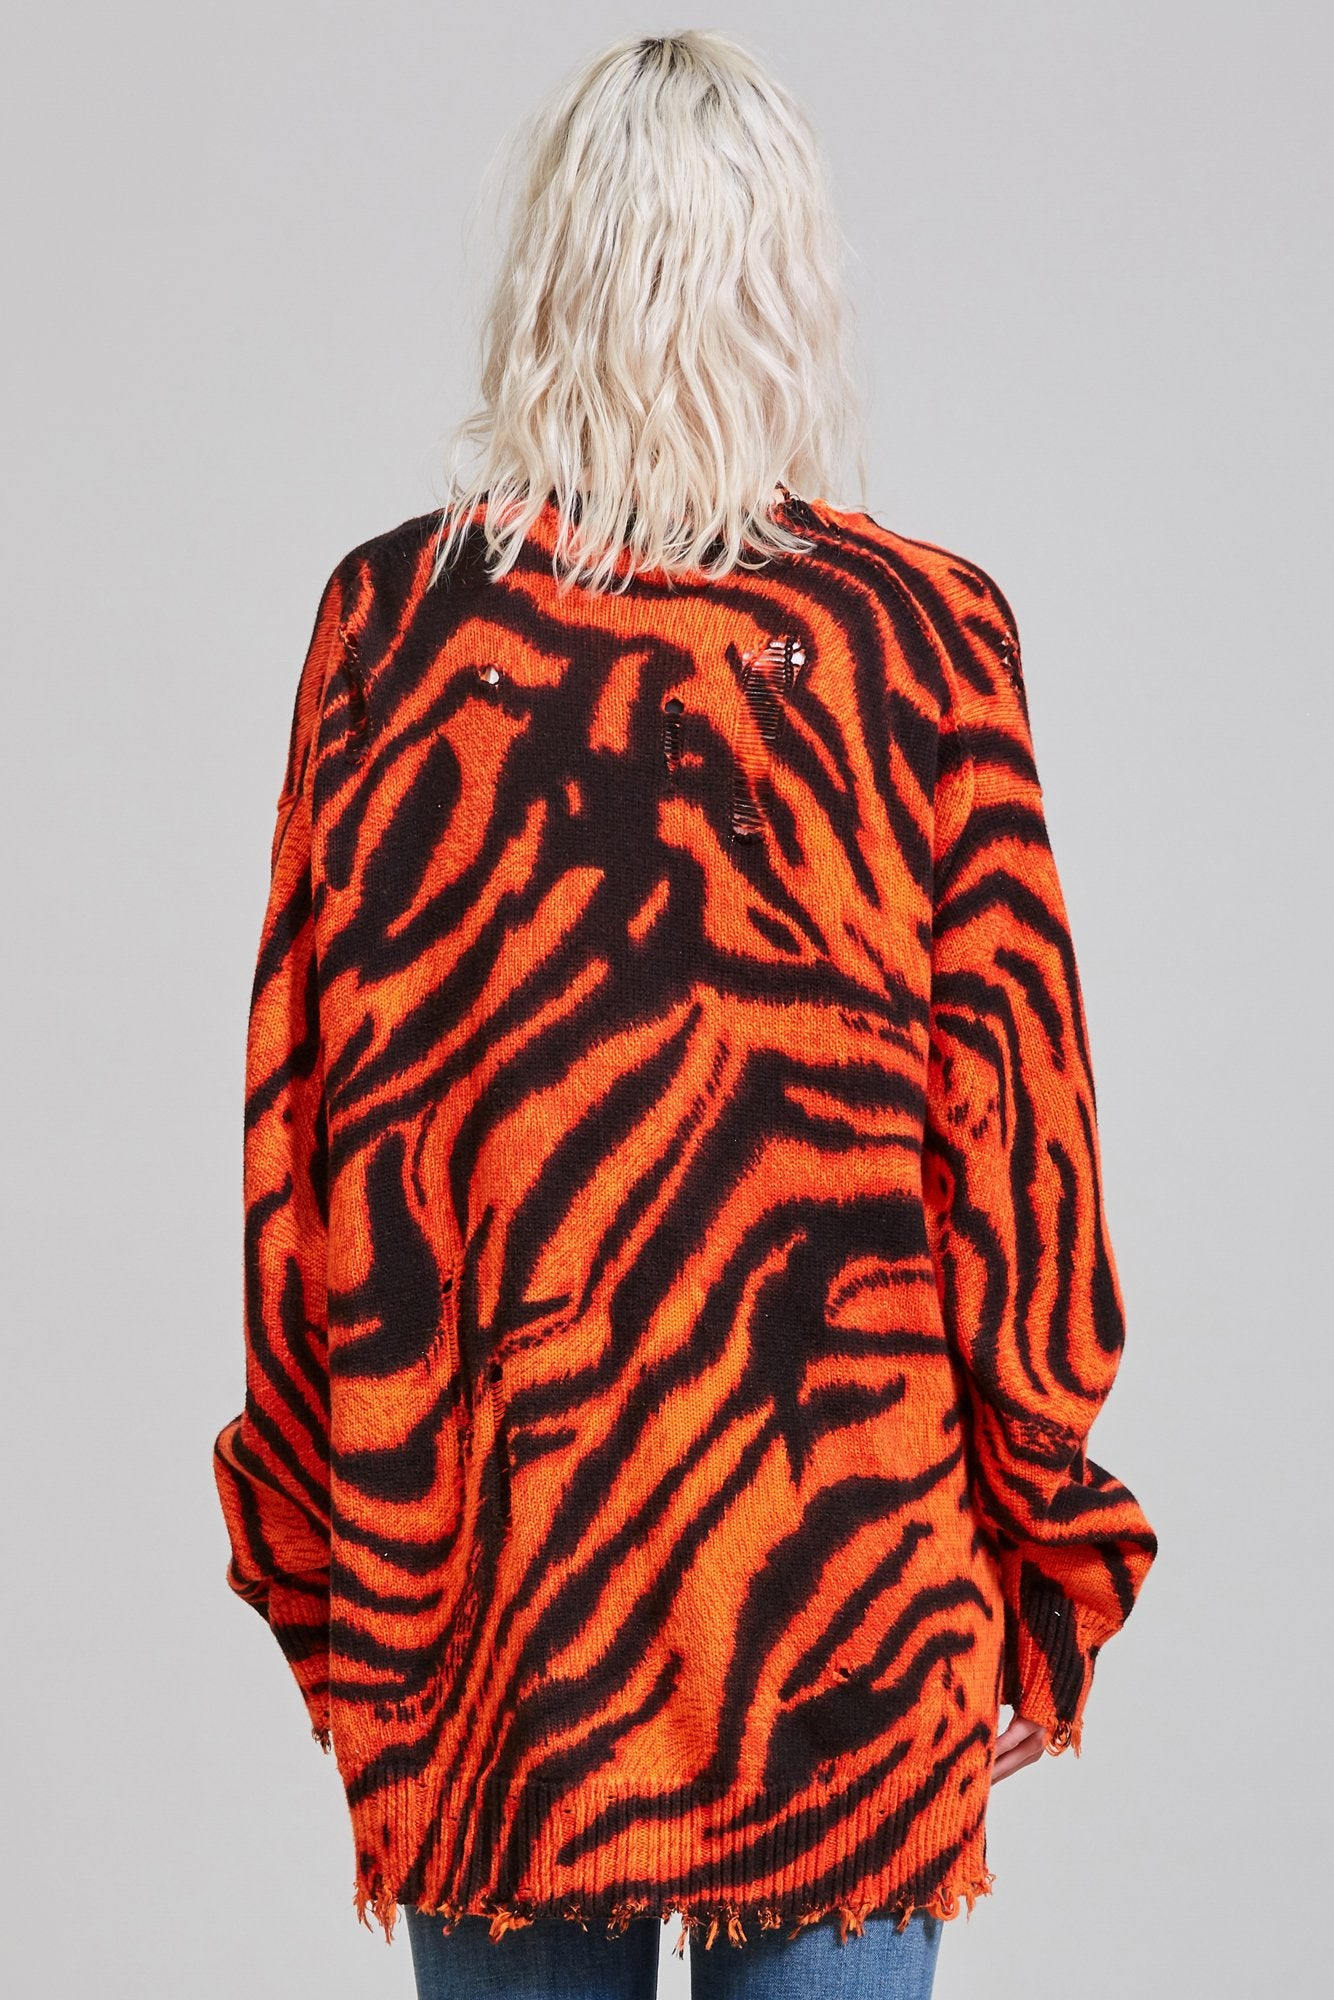 DISTRESSED CARDIGAN - ORANGE ZEBRA